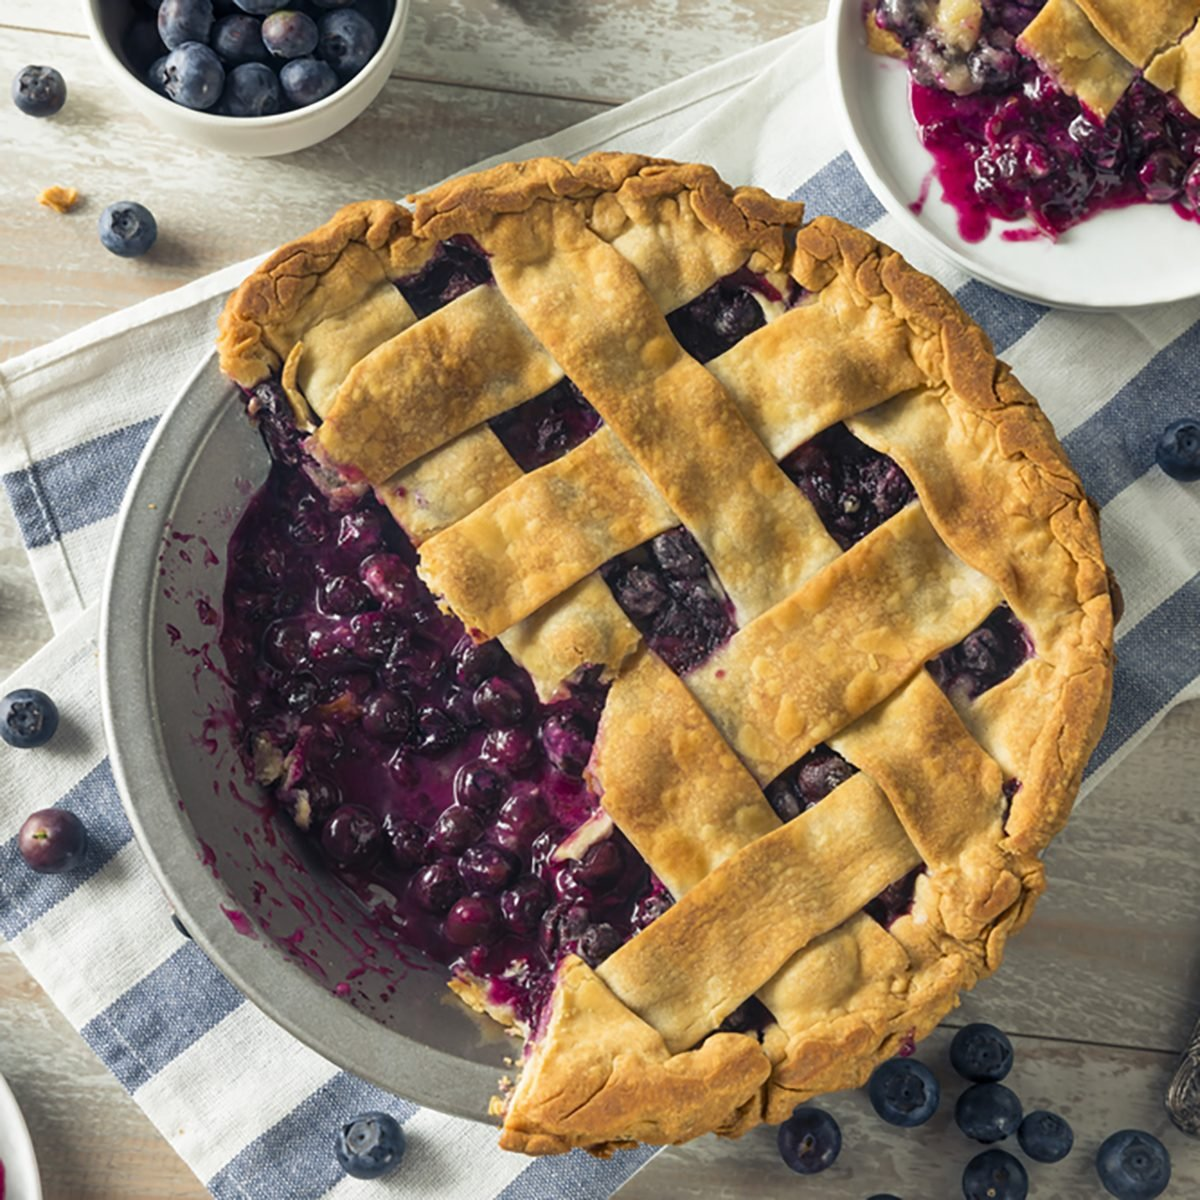 9 Mistakes You're Making When Baking Pie